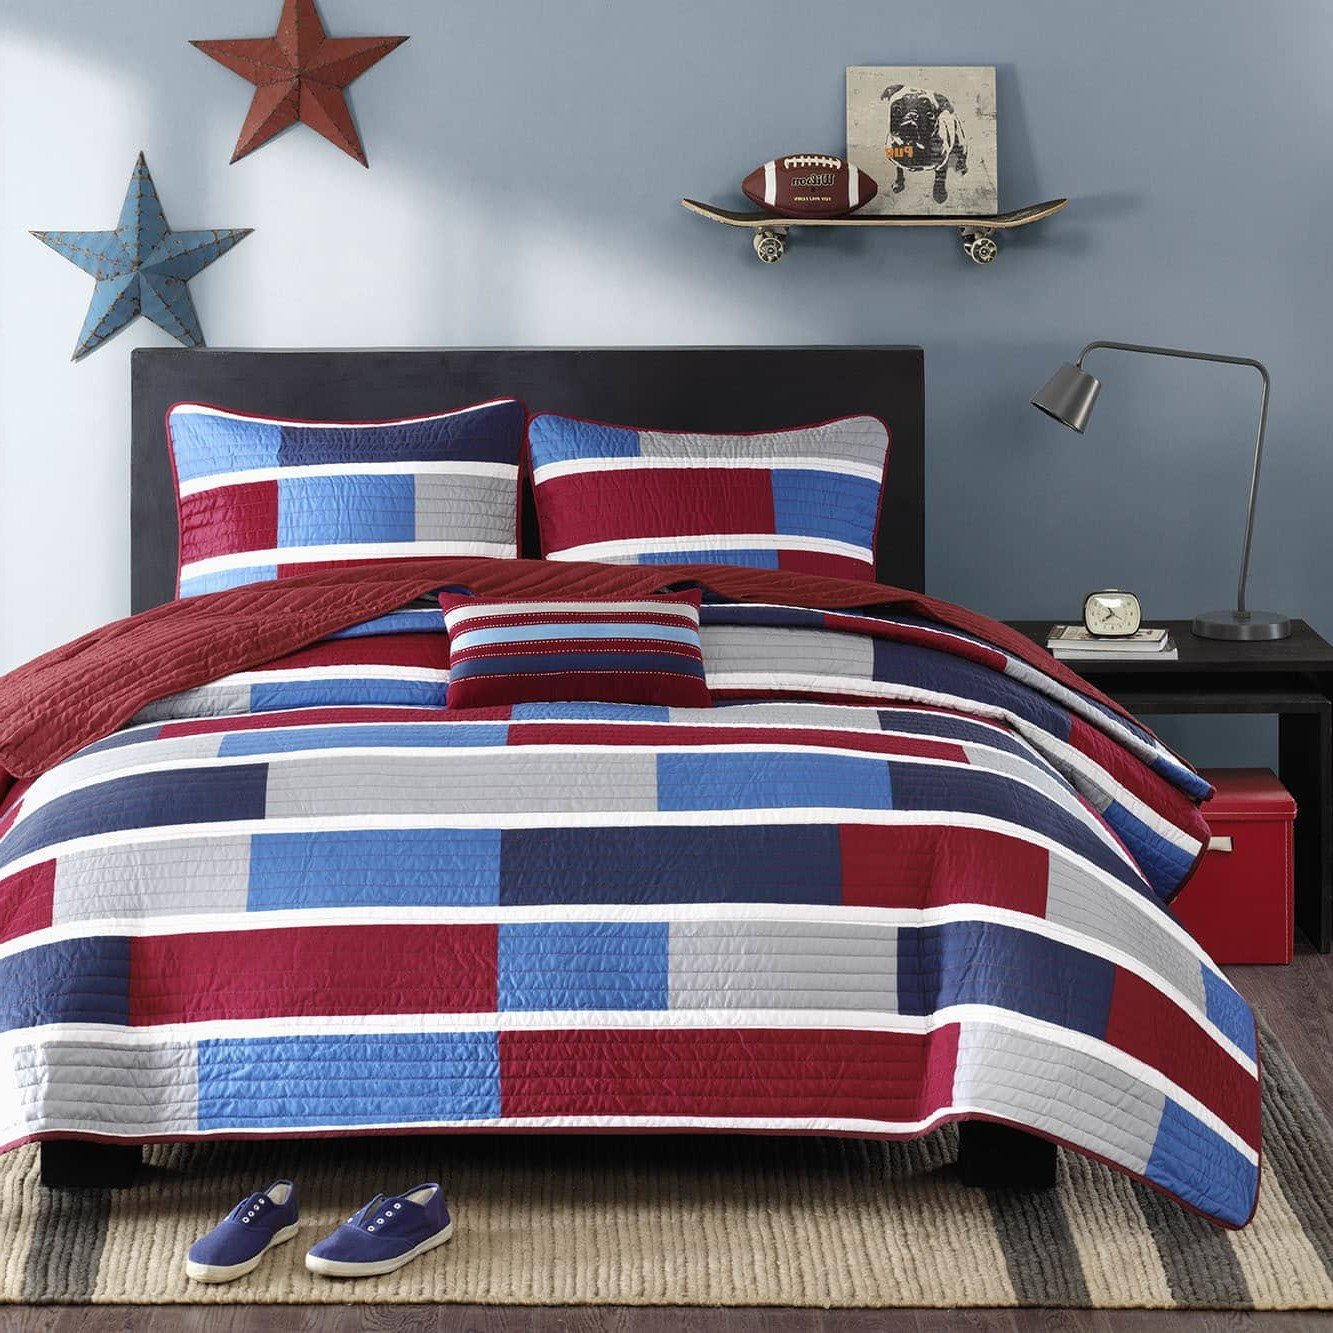 4 Piece Teen Red Navy Royal Blue Grey White Full Queen Coverlet Set, Patchwork Themed Bedding Block Square Burgundy Trendy Stylish Rectangles Bright Colorful Striped Chic Bold, Microfiber, Polyester